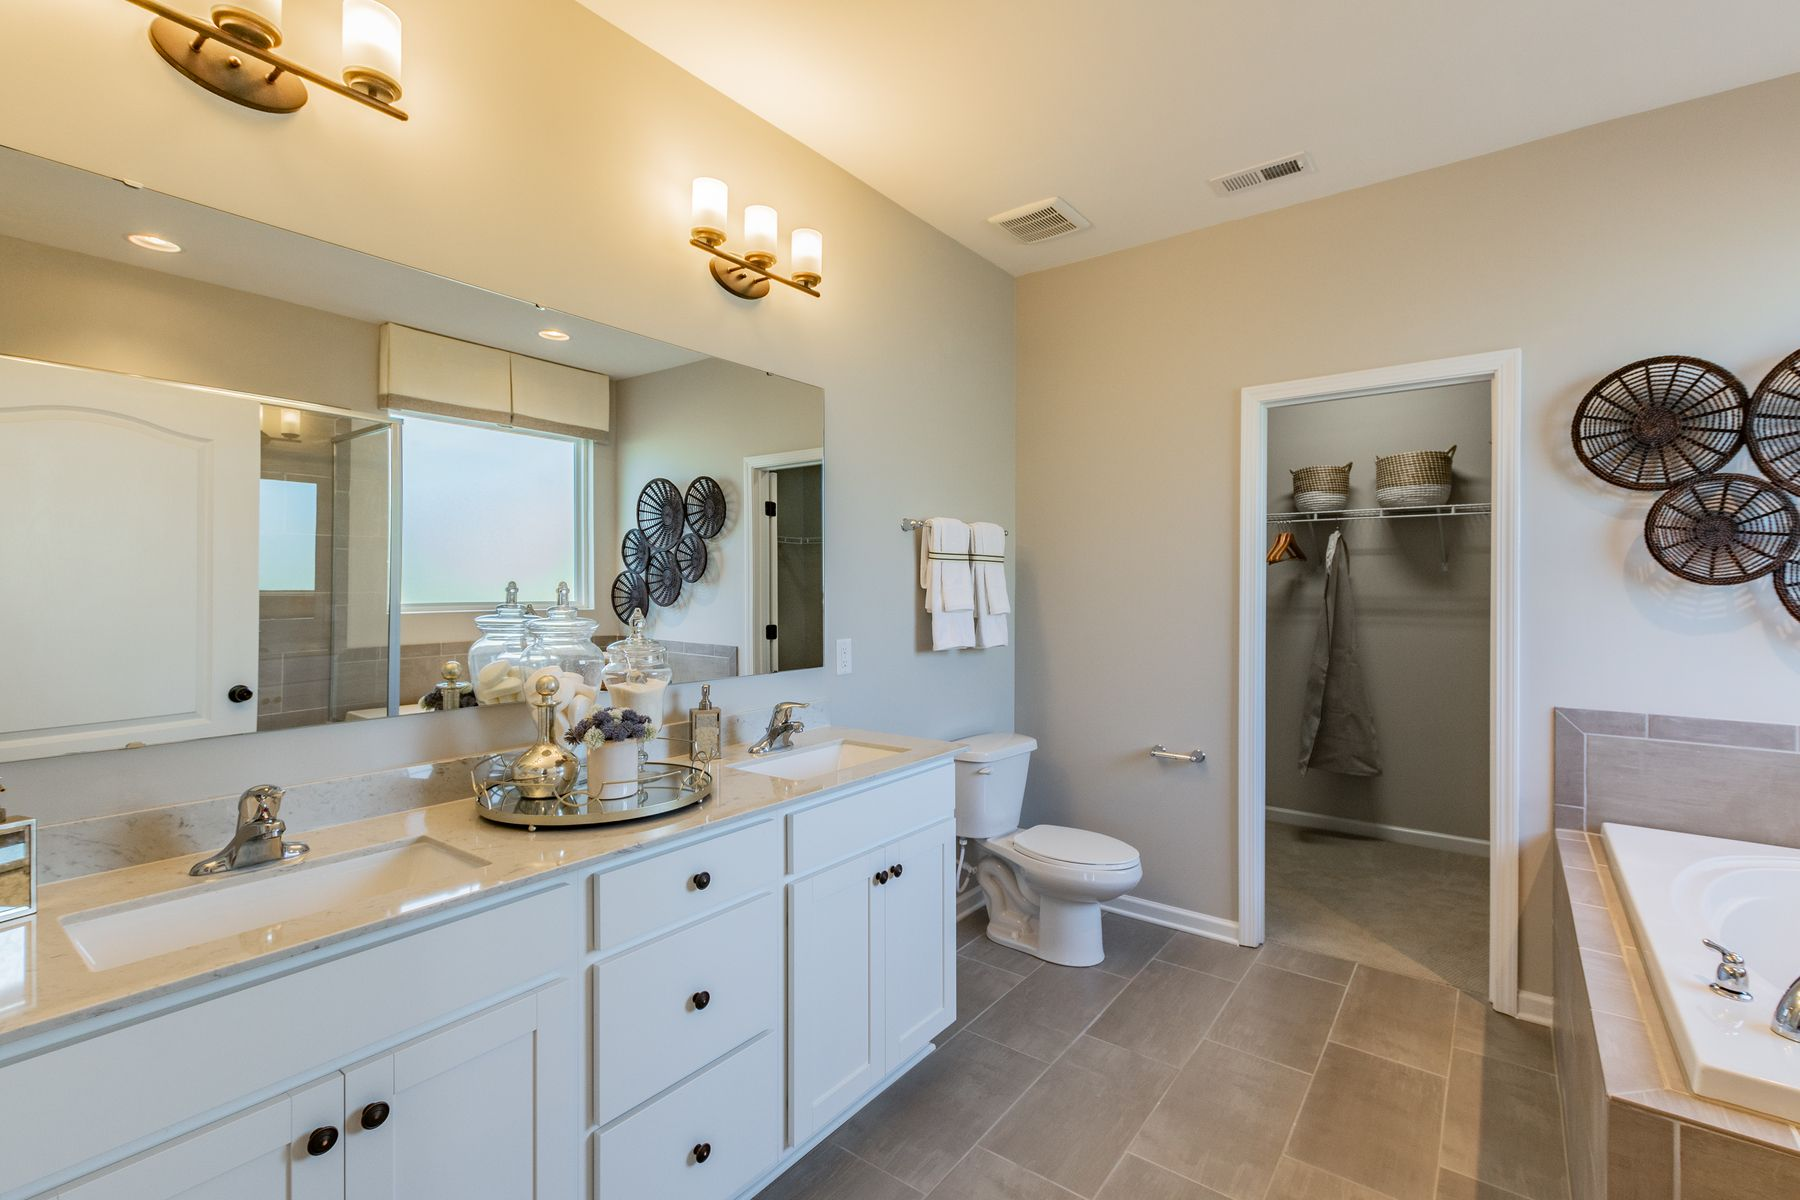 Bathroom featured in the Marvin II By M/I Homes in Charlotte, NC